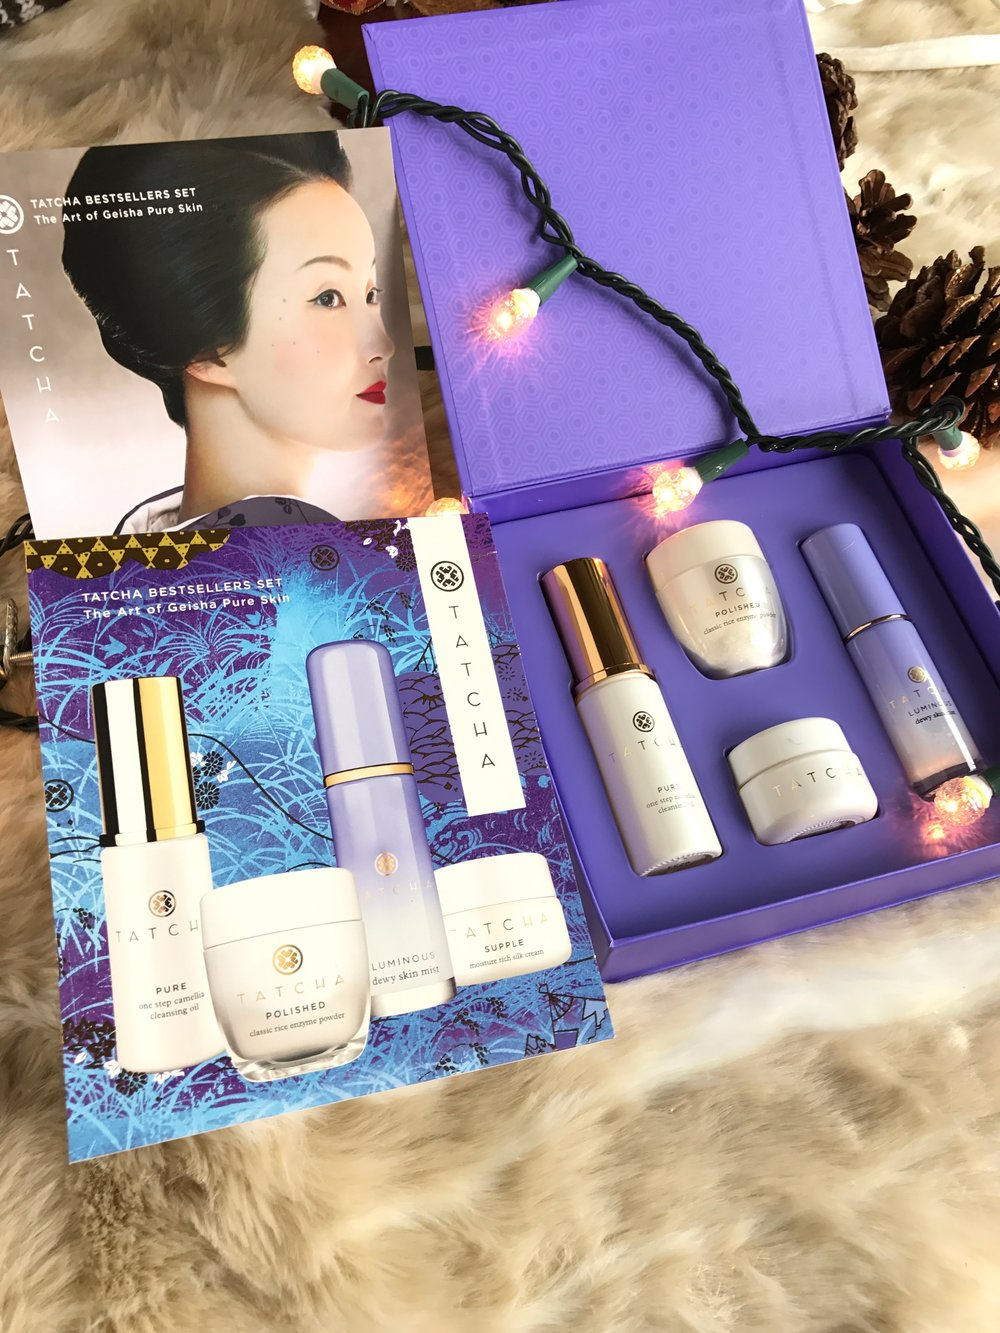 tatcha bestsellers kit beauty-christmas-gifts-2016_img_1379